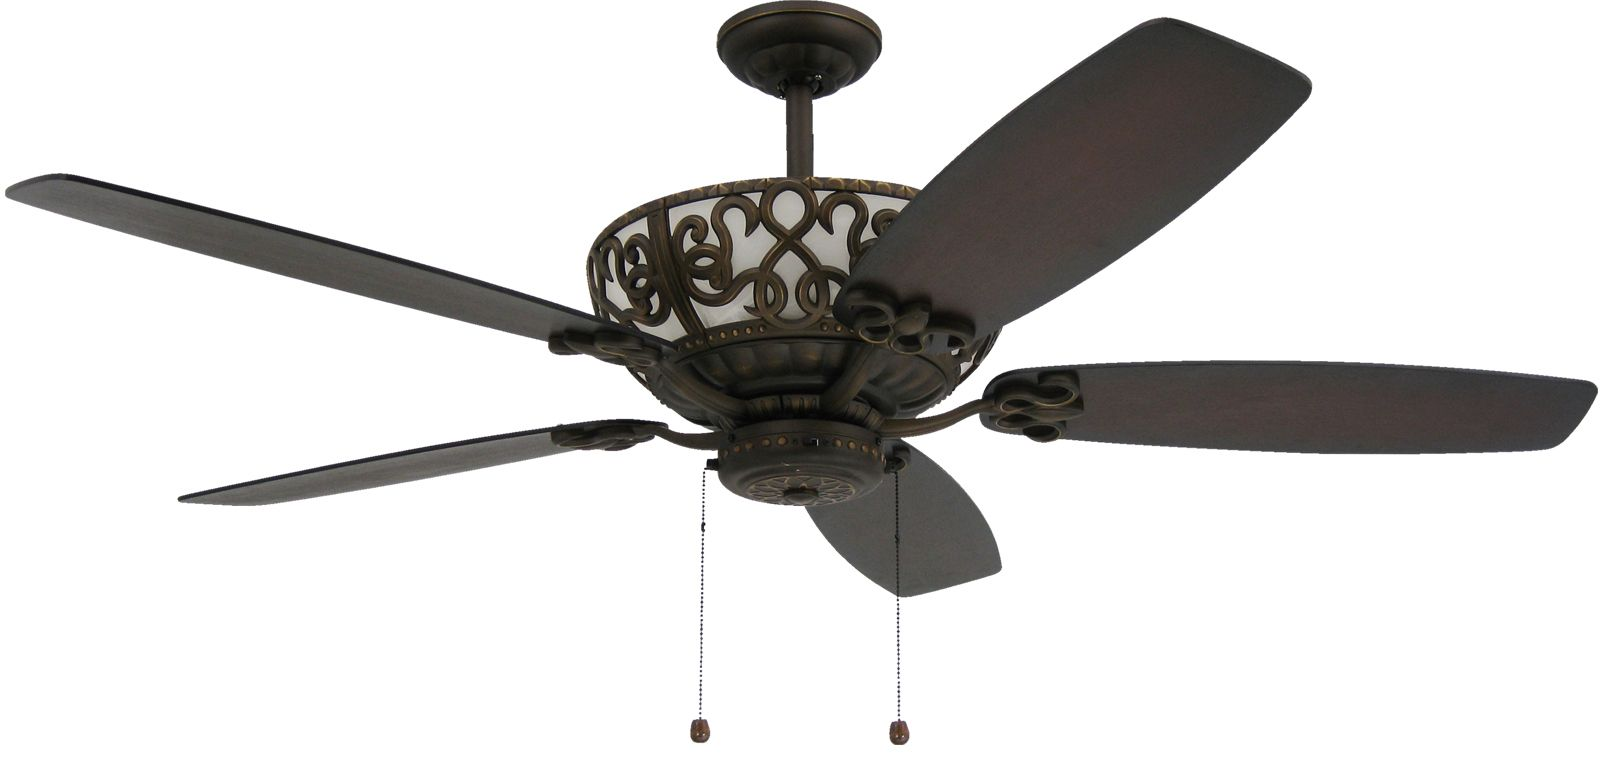 Troposair Excaliber 60 In Rubbed Bronze Ceiling Fan With Curved Edge Reversable Blades In Walnut Dark Walnut And Uplight Bronze Ceiling Fan Ceiling Fan Fan